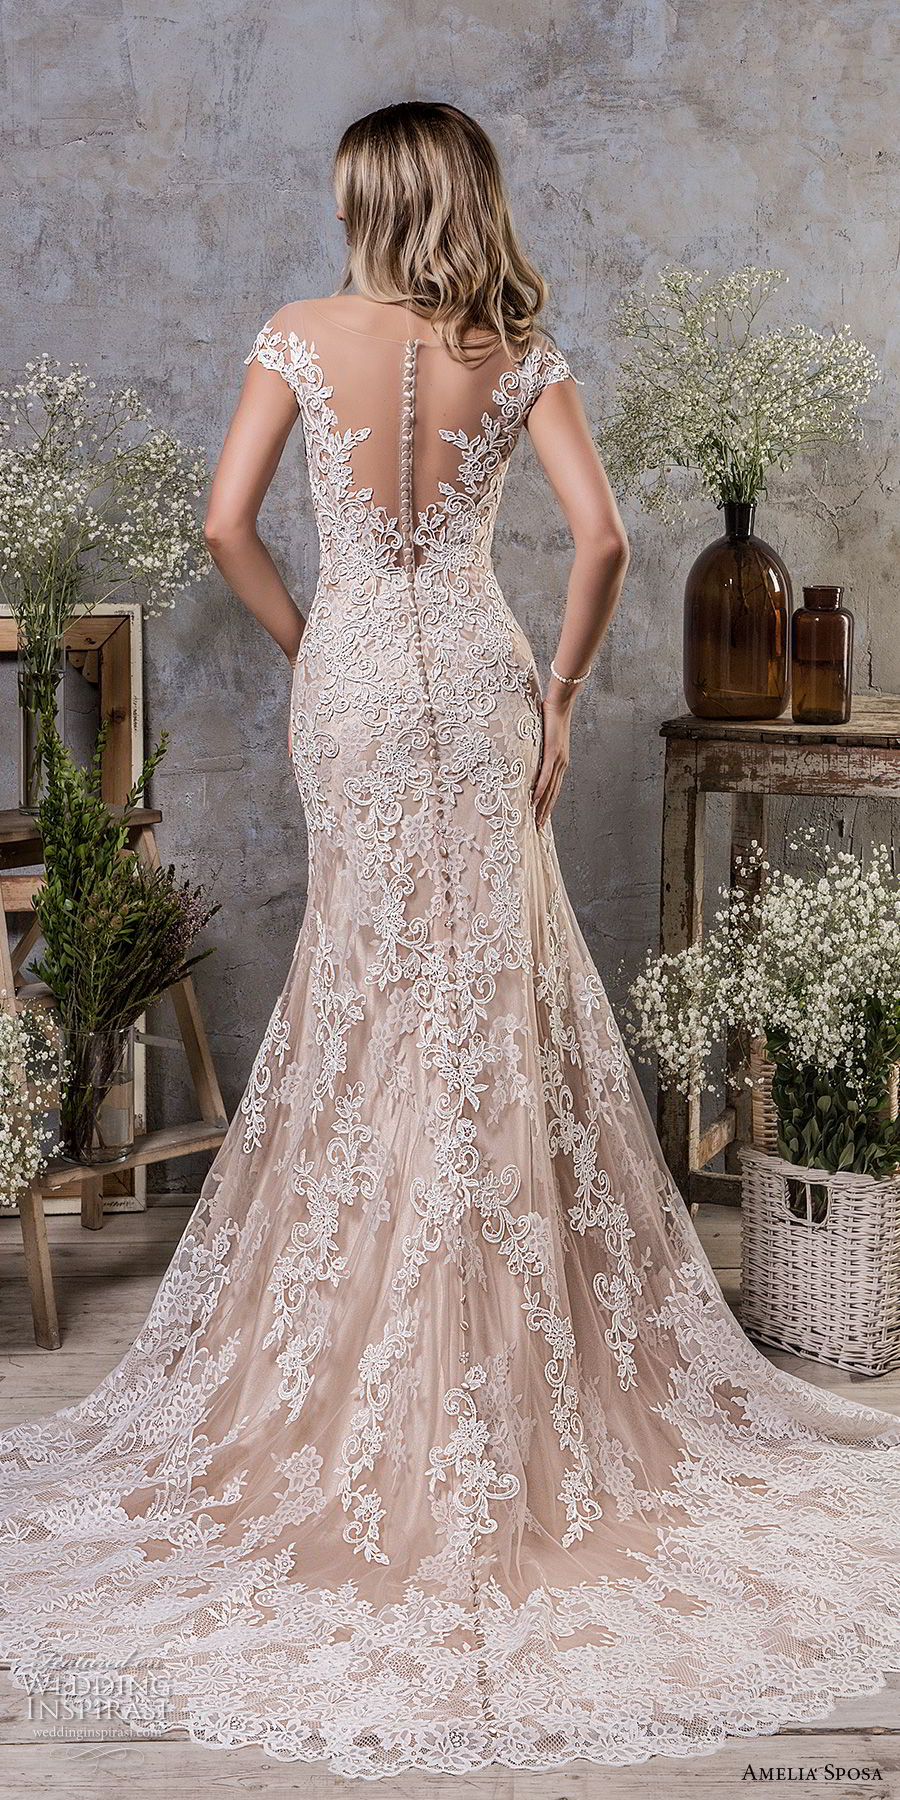 amelia sposa fall 2018 bridal cap sleeves illusion bateau sweetheart neckline full embellishment champagne color a line wedding dress sheer button back medium train (5) bv